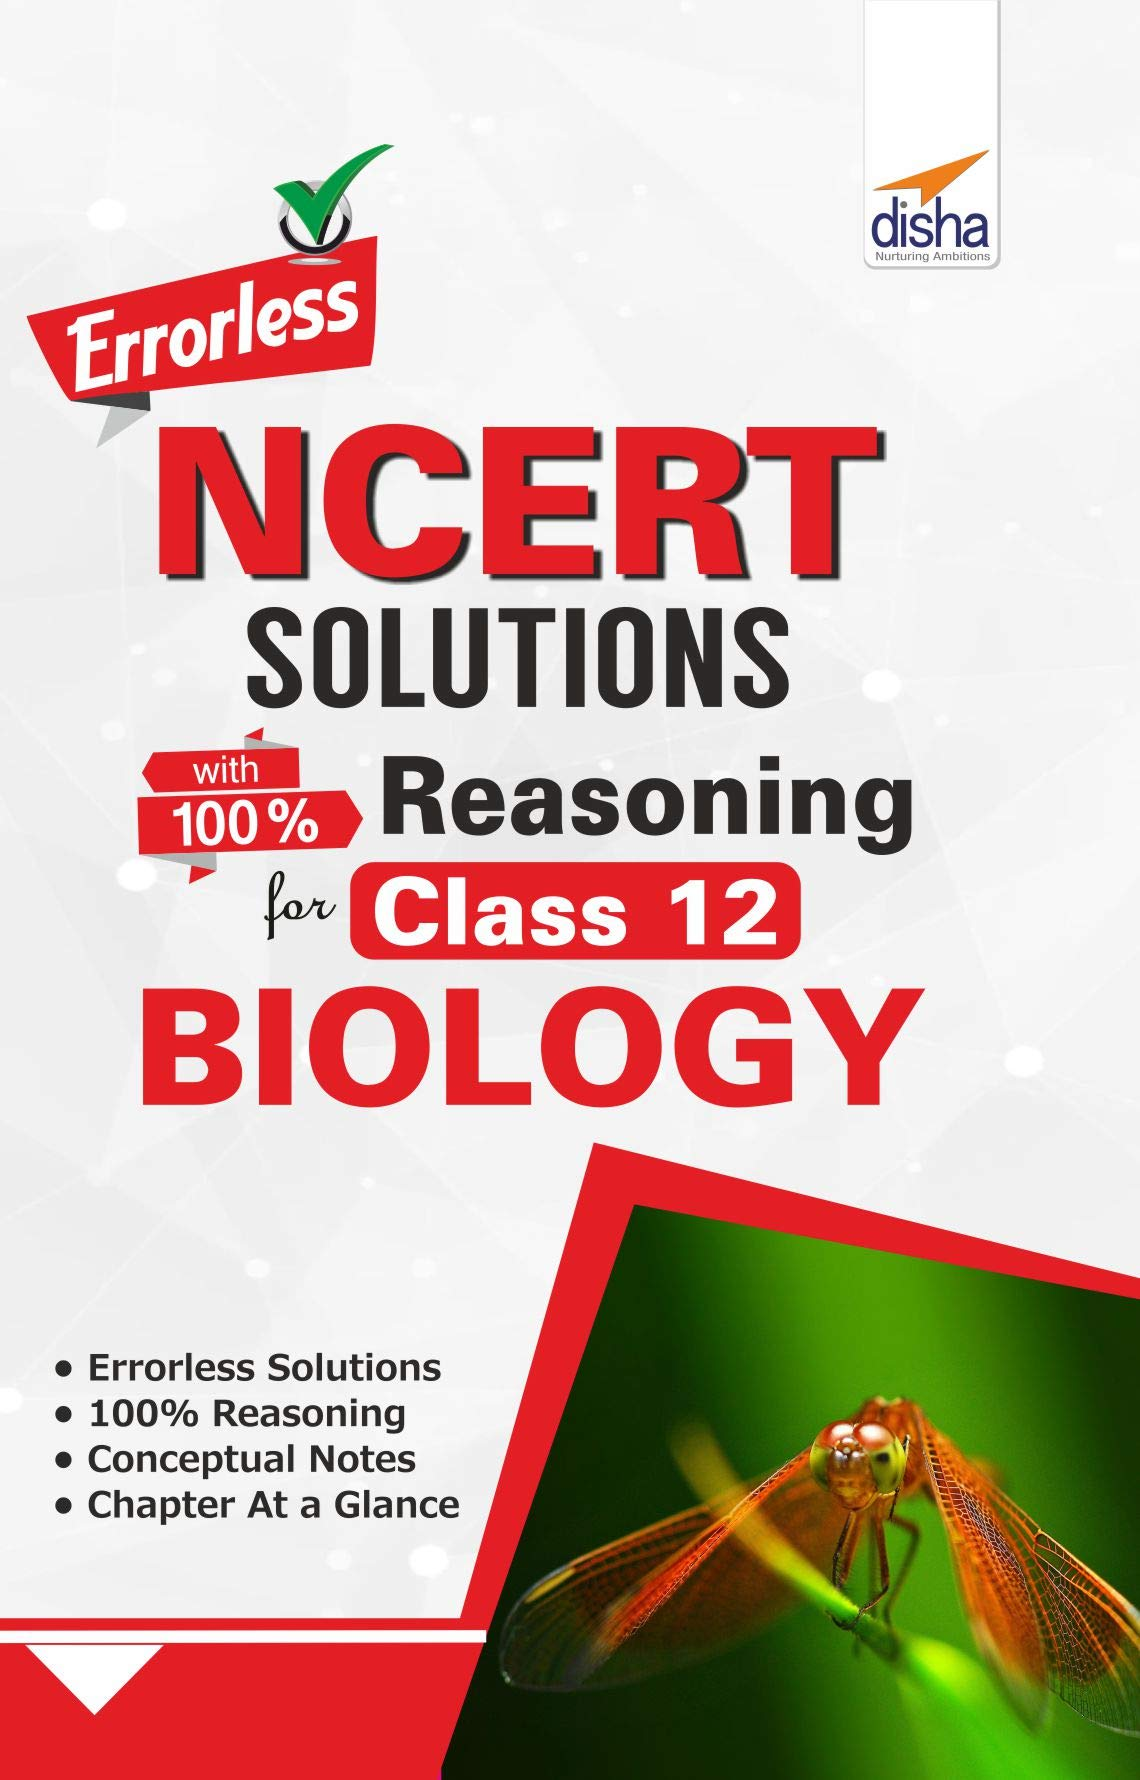 Errorless NCERT Solutions with with 100% Reasoning for Class